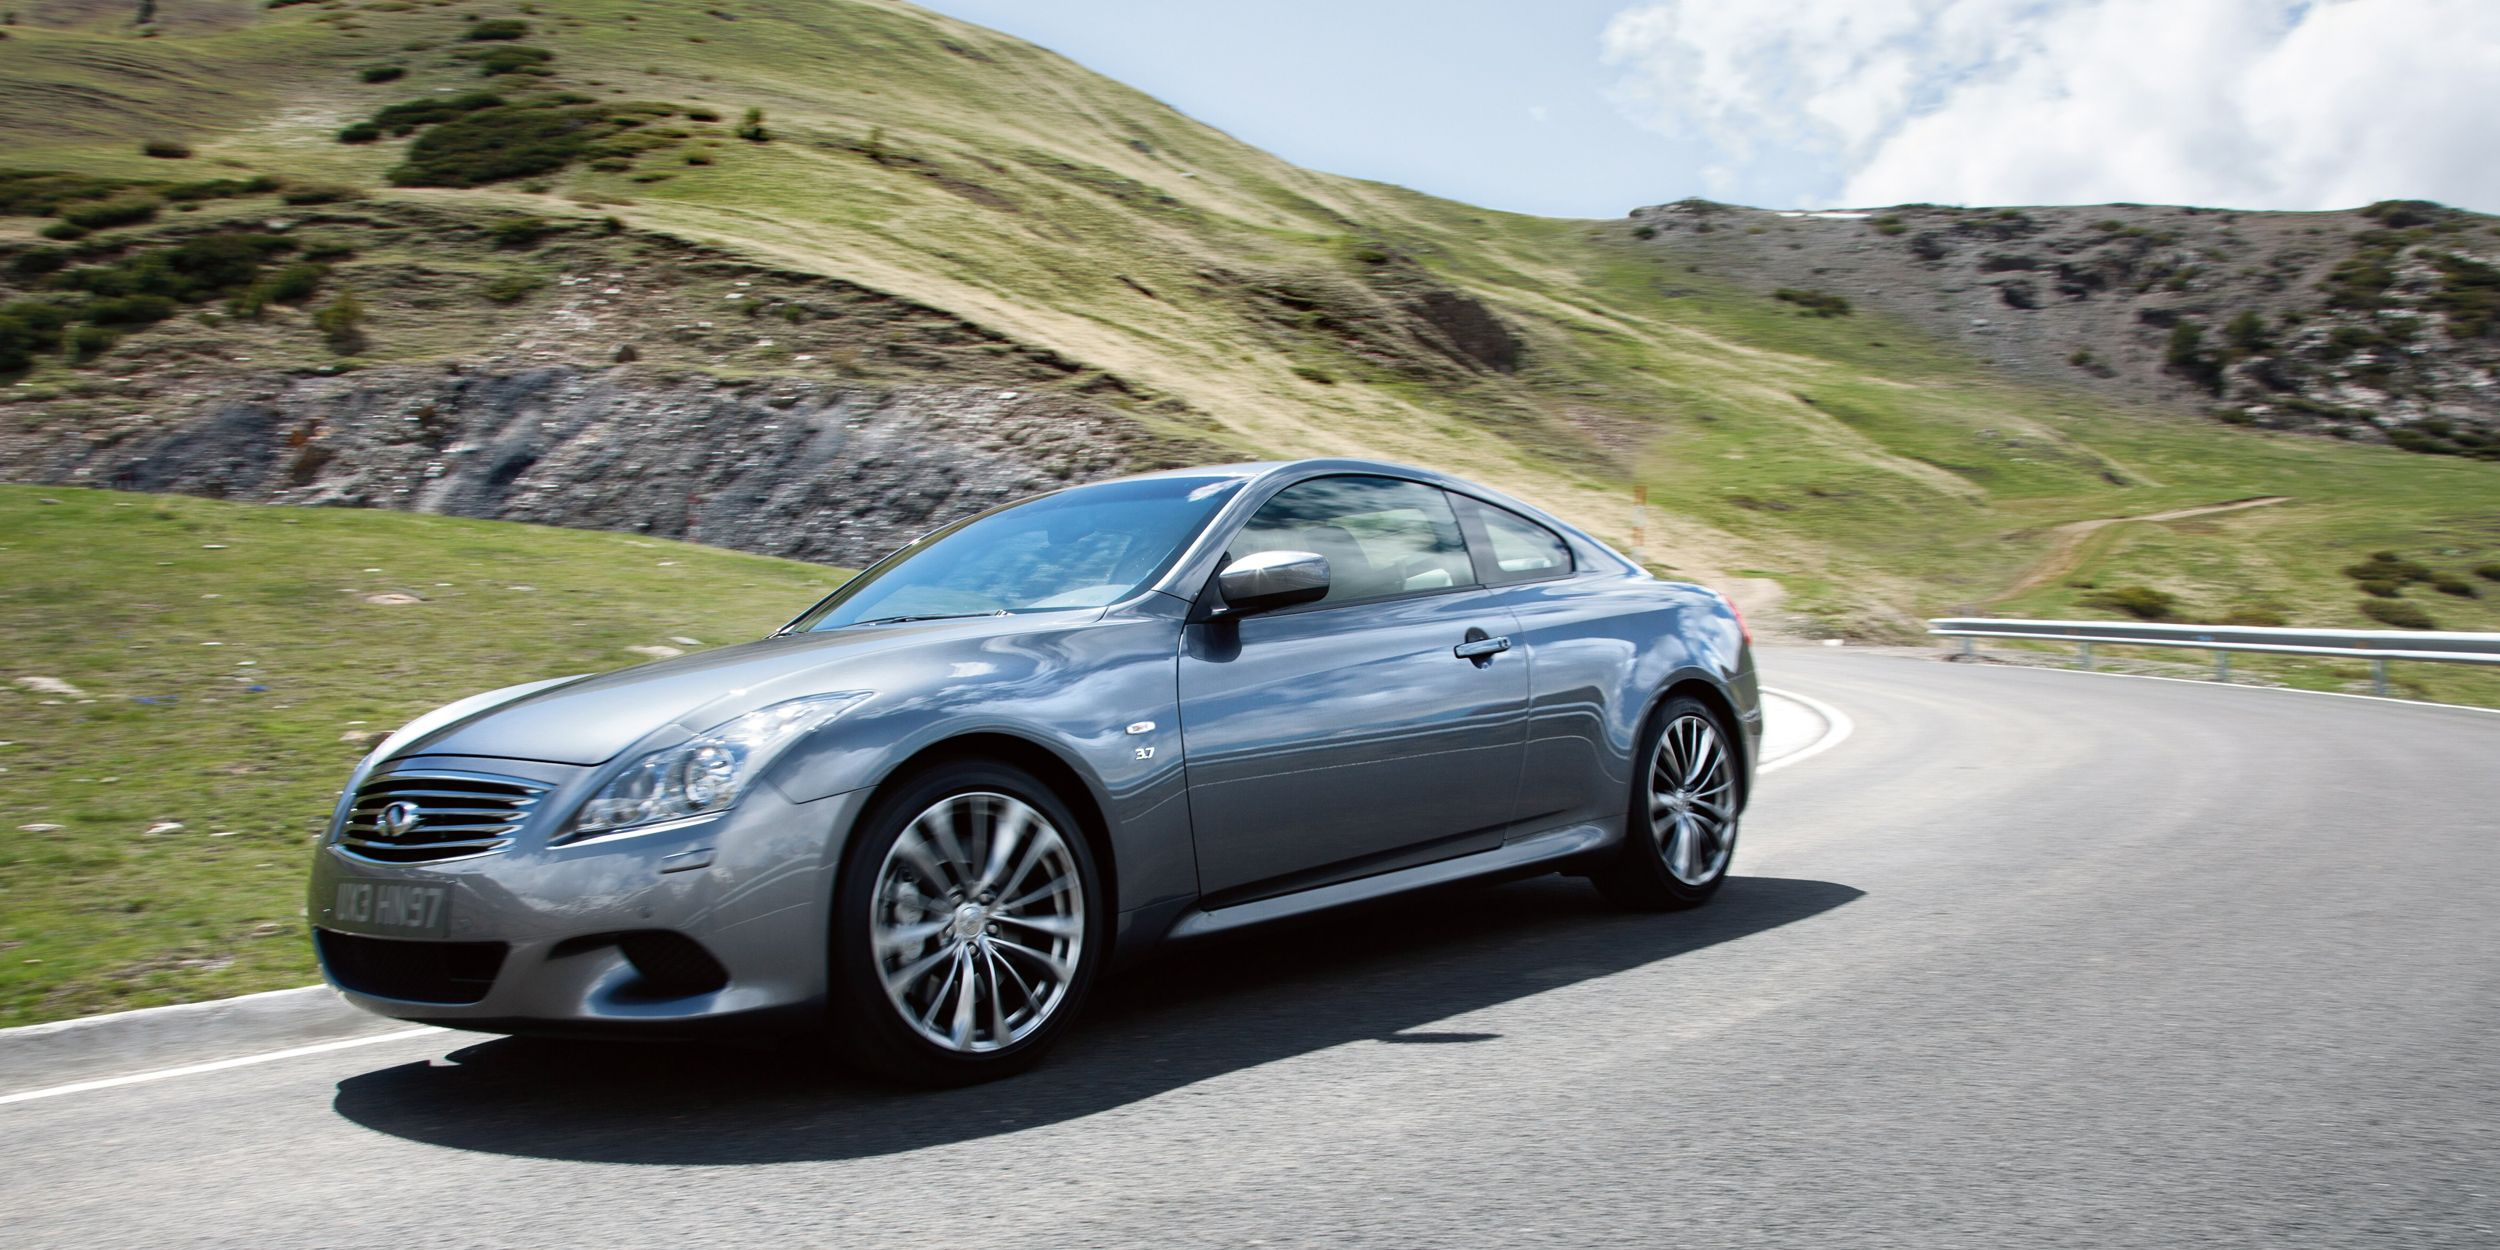 "<p>You can get the Q60S Coupe with a stick, as long as you select the 6MT or the Limited 6MT trim. You'll get the aging VQ <a href=""http://www.caranddriver.com/infiniti/q60"">3.7-liter V6</a> that's good for 330 hp and 270 lb.-ft. of torque. It's a RWD and sleek-looking, though it'll soon be discontinued and <a href=""http://www.roadandtrack.com/car-shows/detroit-auto-show/news/a27831/infiniti-q60-first-look/"">replaced with the new Q60</a>, which doesn't offer a manual option. Yet. . .</p>"